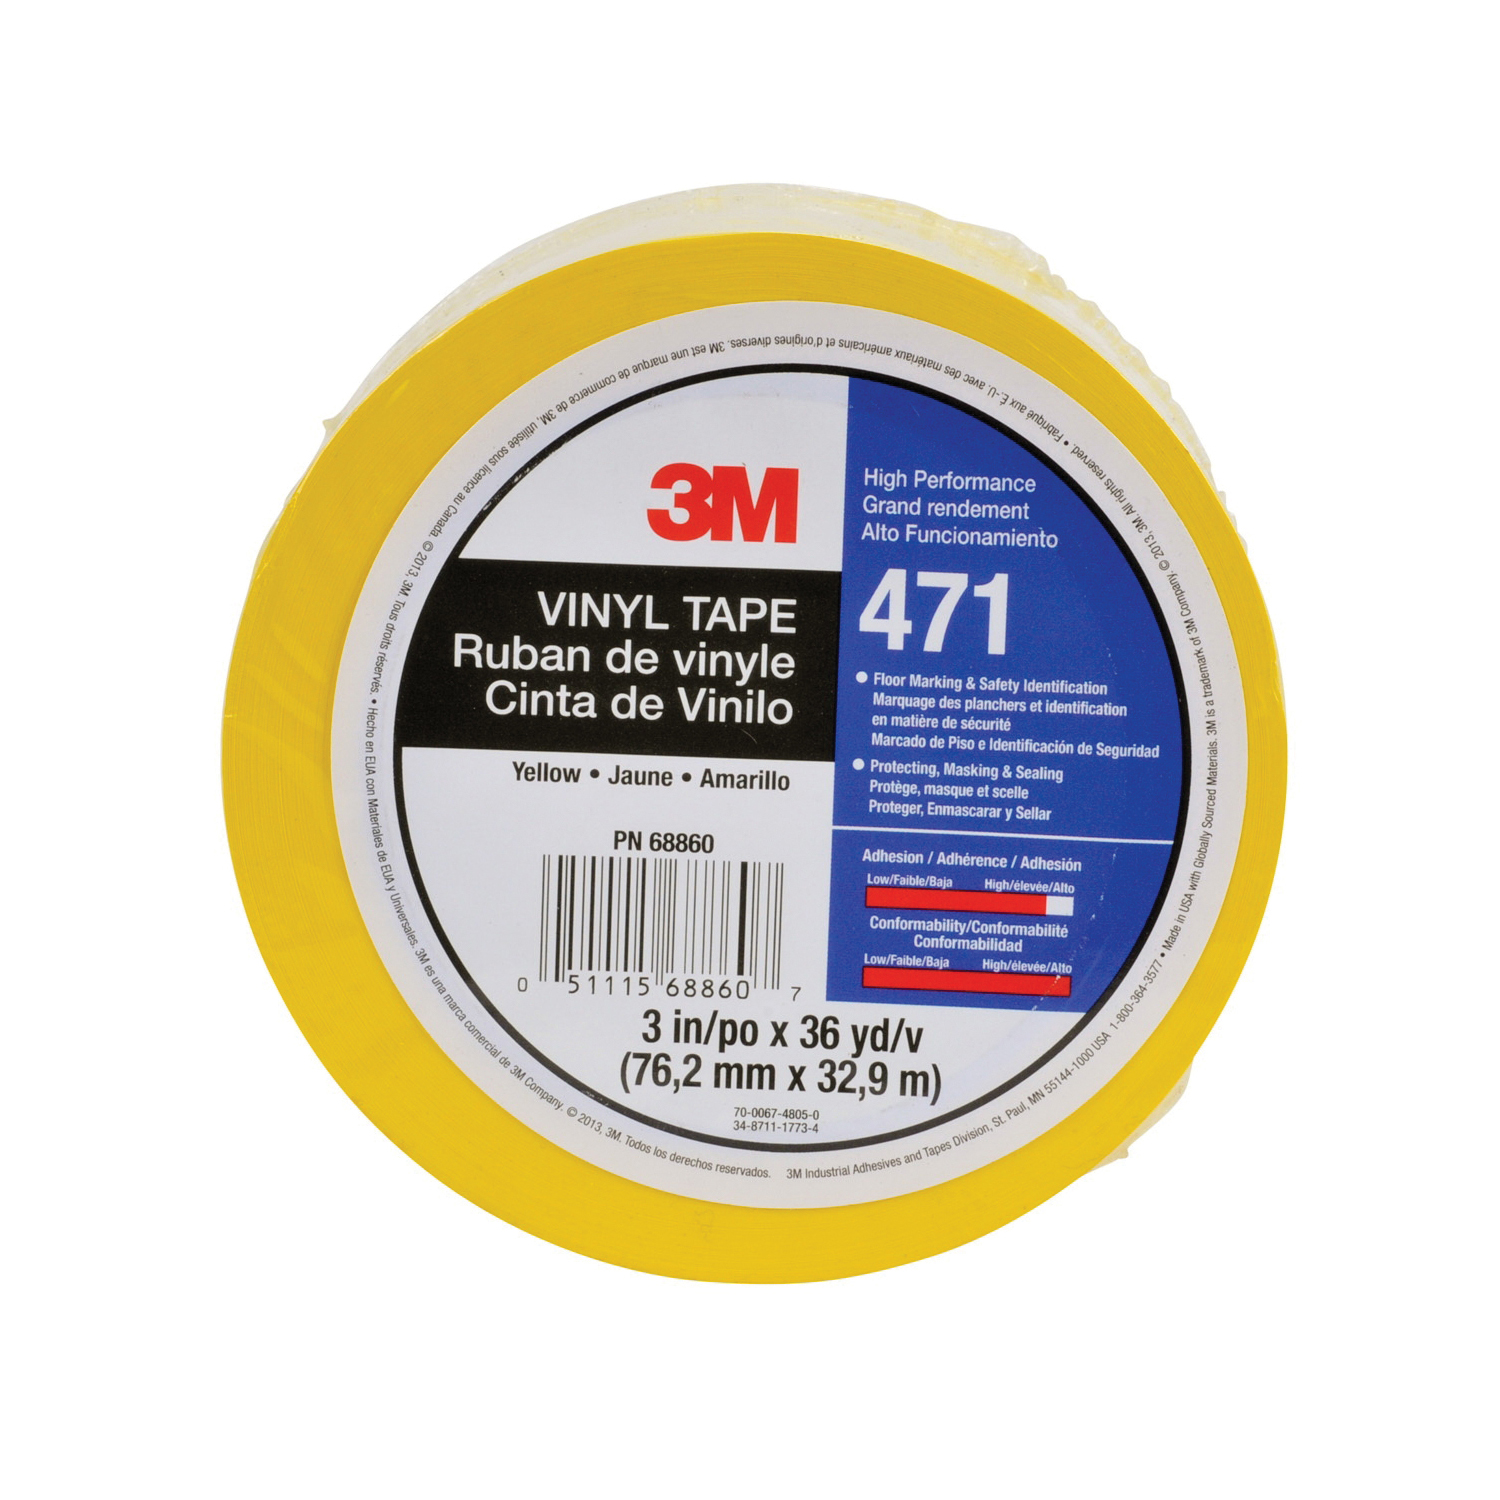 3M™ 021200-07182 High Performance Vinyl Tape, 36 yd L x 1-1/2 in W, 5.2 mil THK, Rubber Adhesive, Vinyl Backing, Yellow